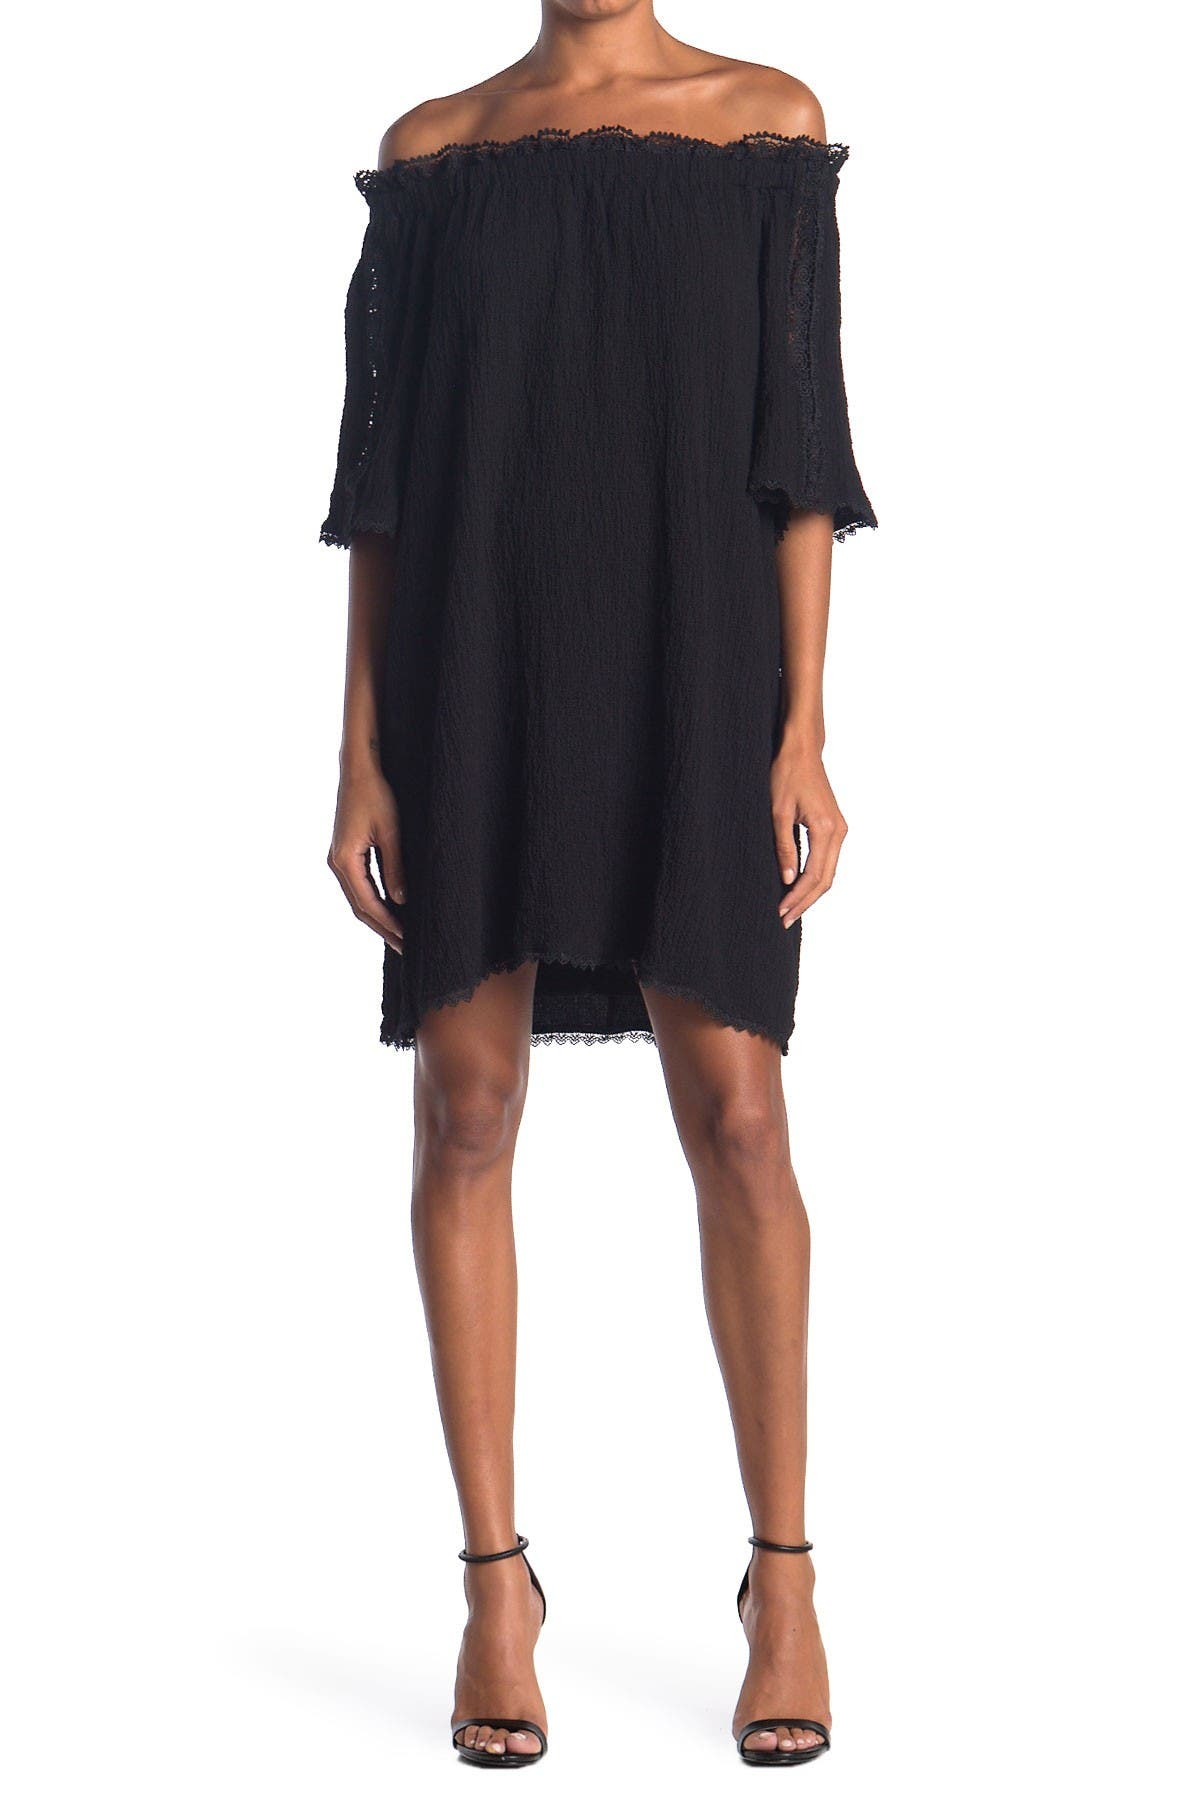 Image of HYFVE Lace Trim Off-the-Shoulder Dress